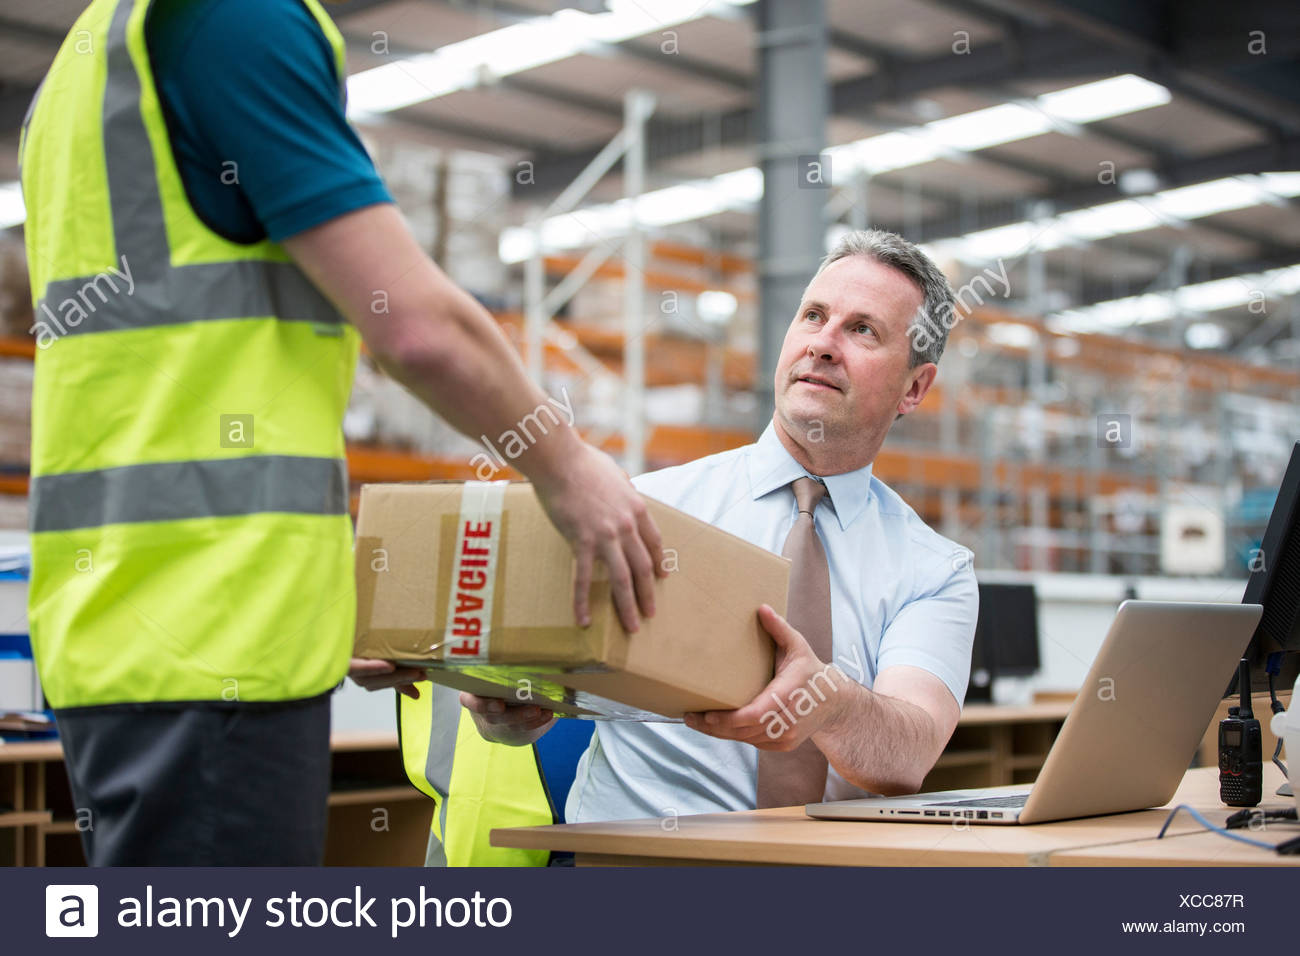 Man delivering cardboard box to another man - Stock Image